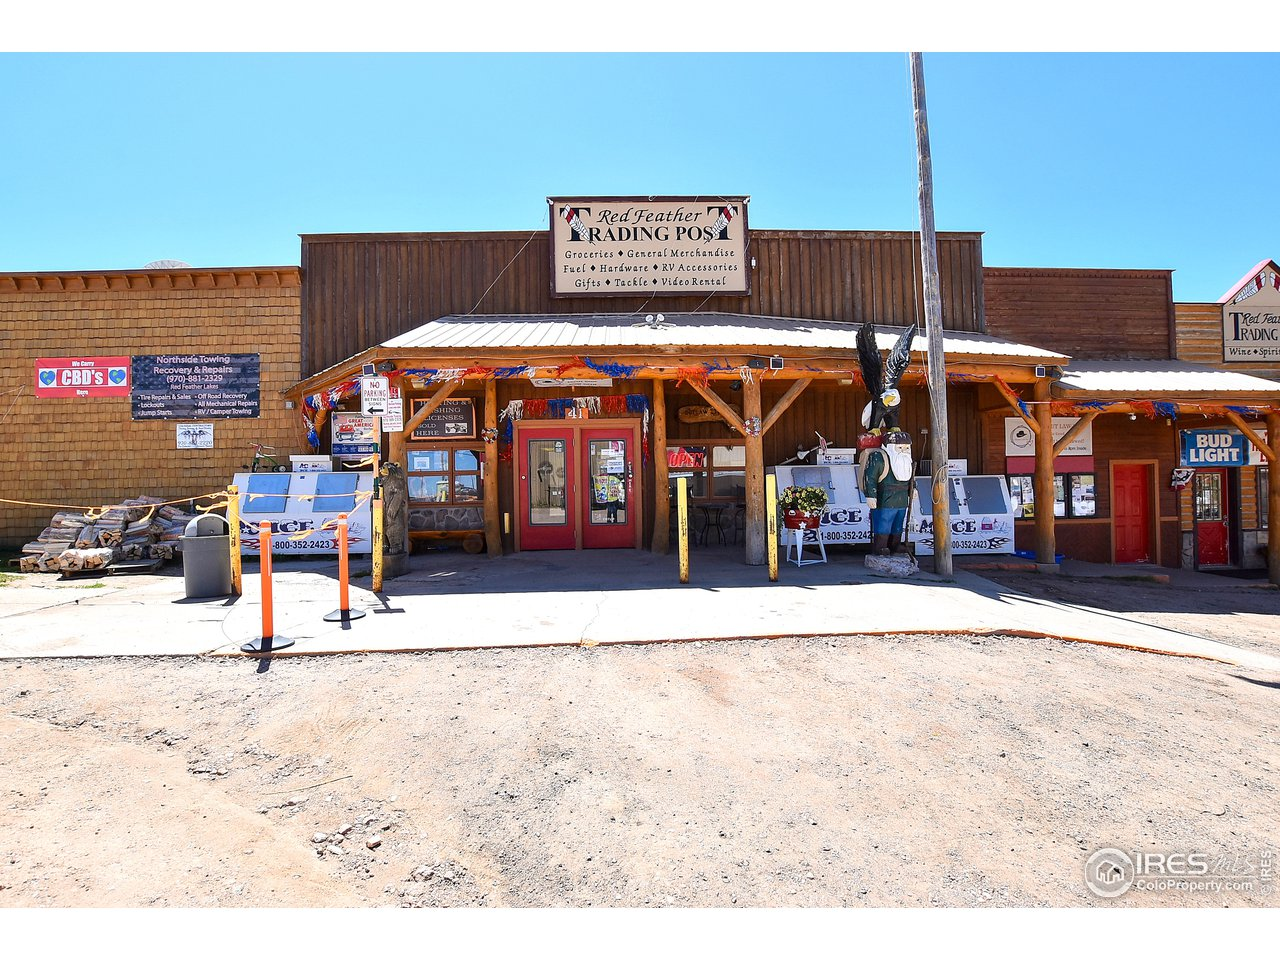 Red Feather Trading Post